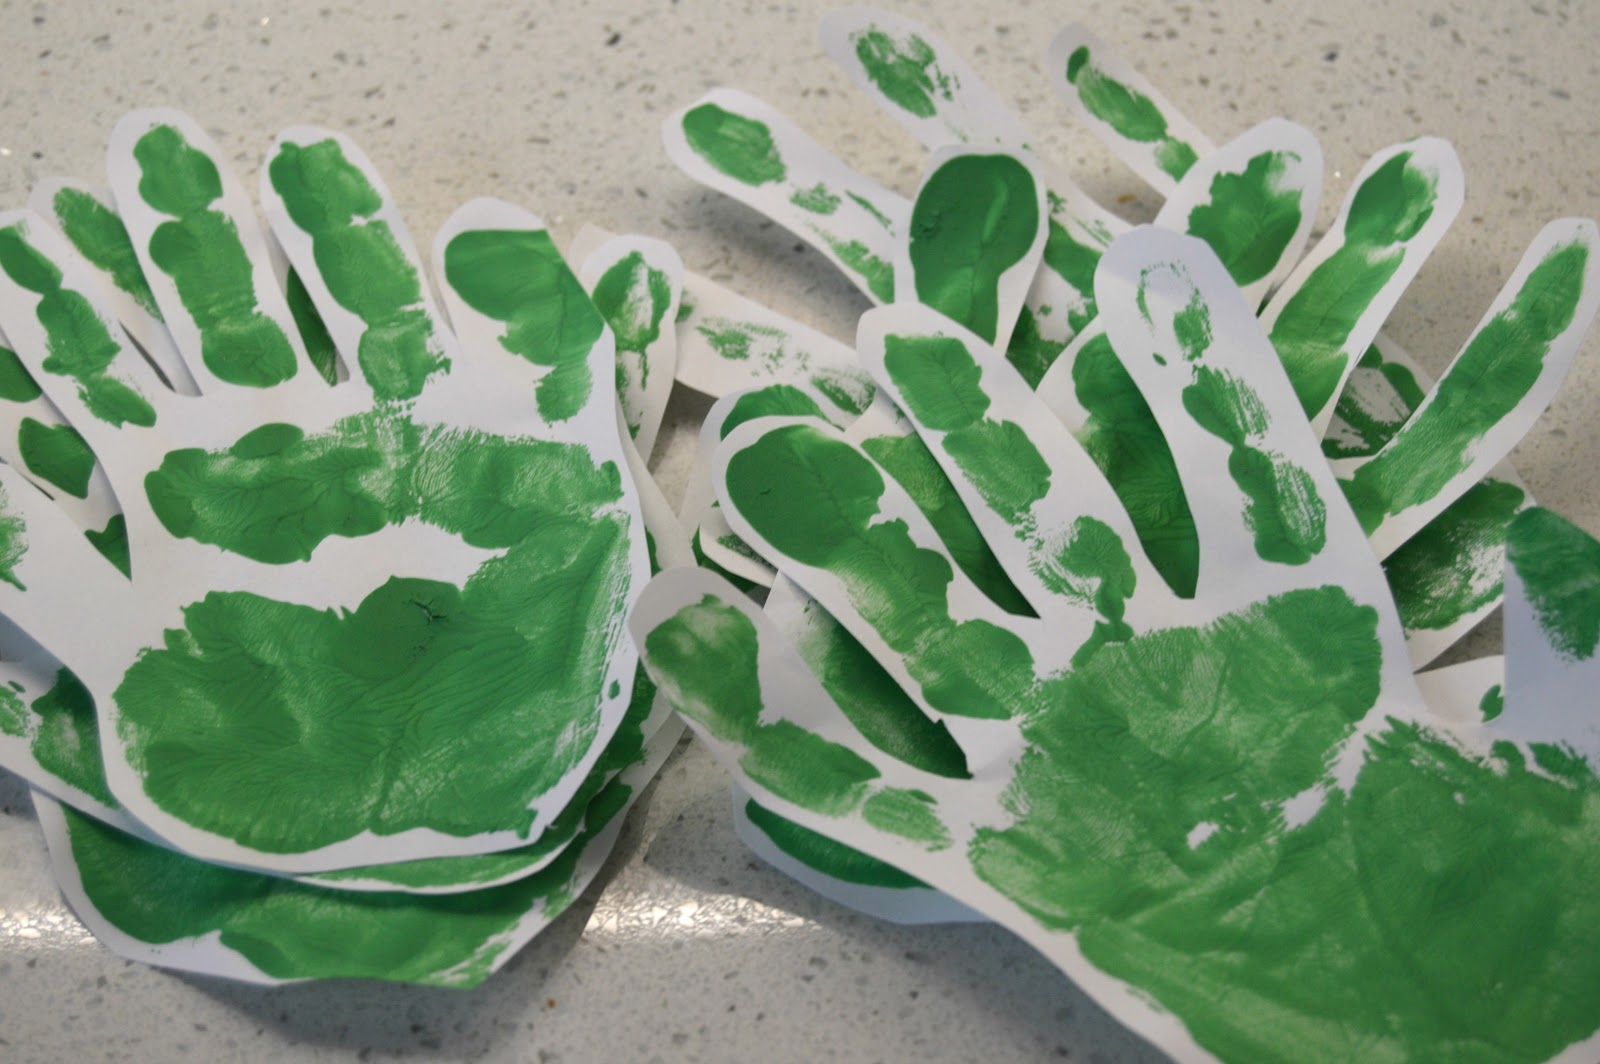 green handprints on paper